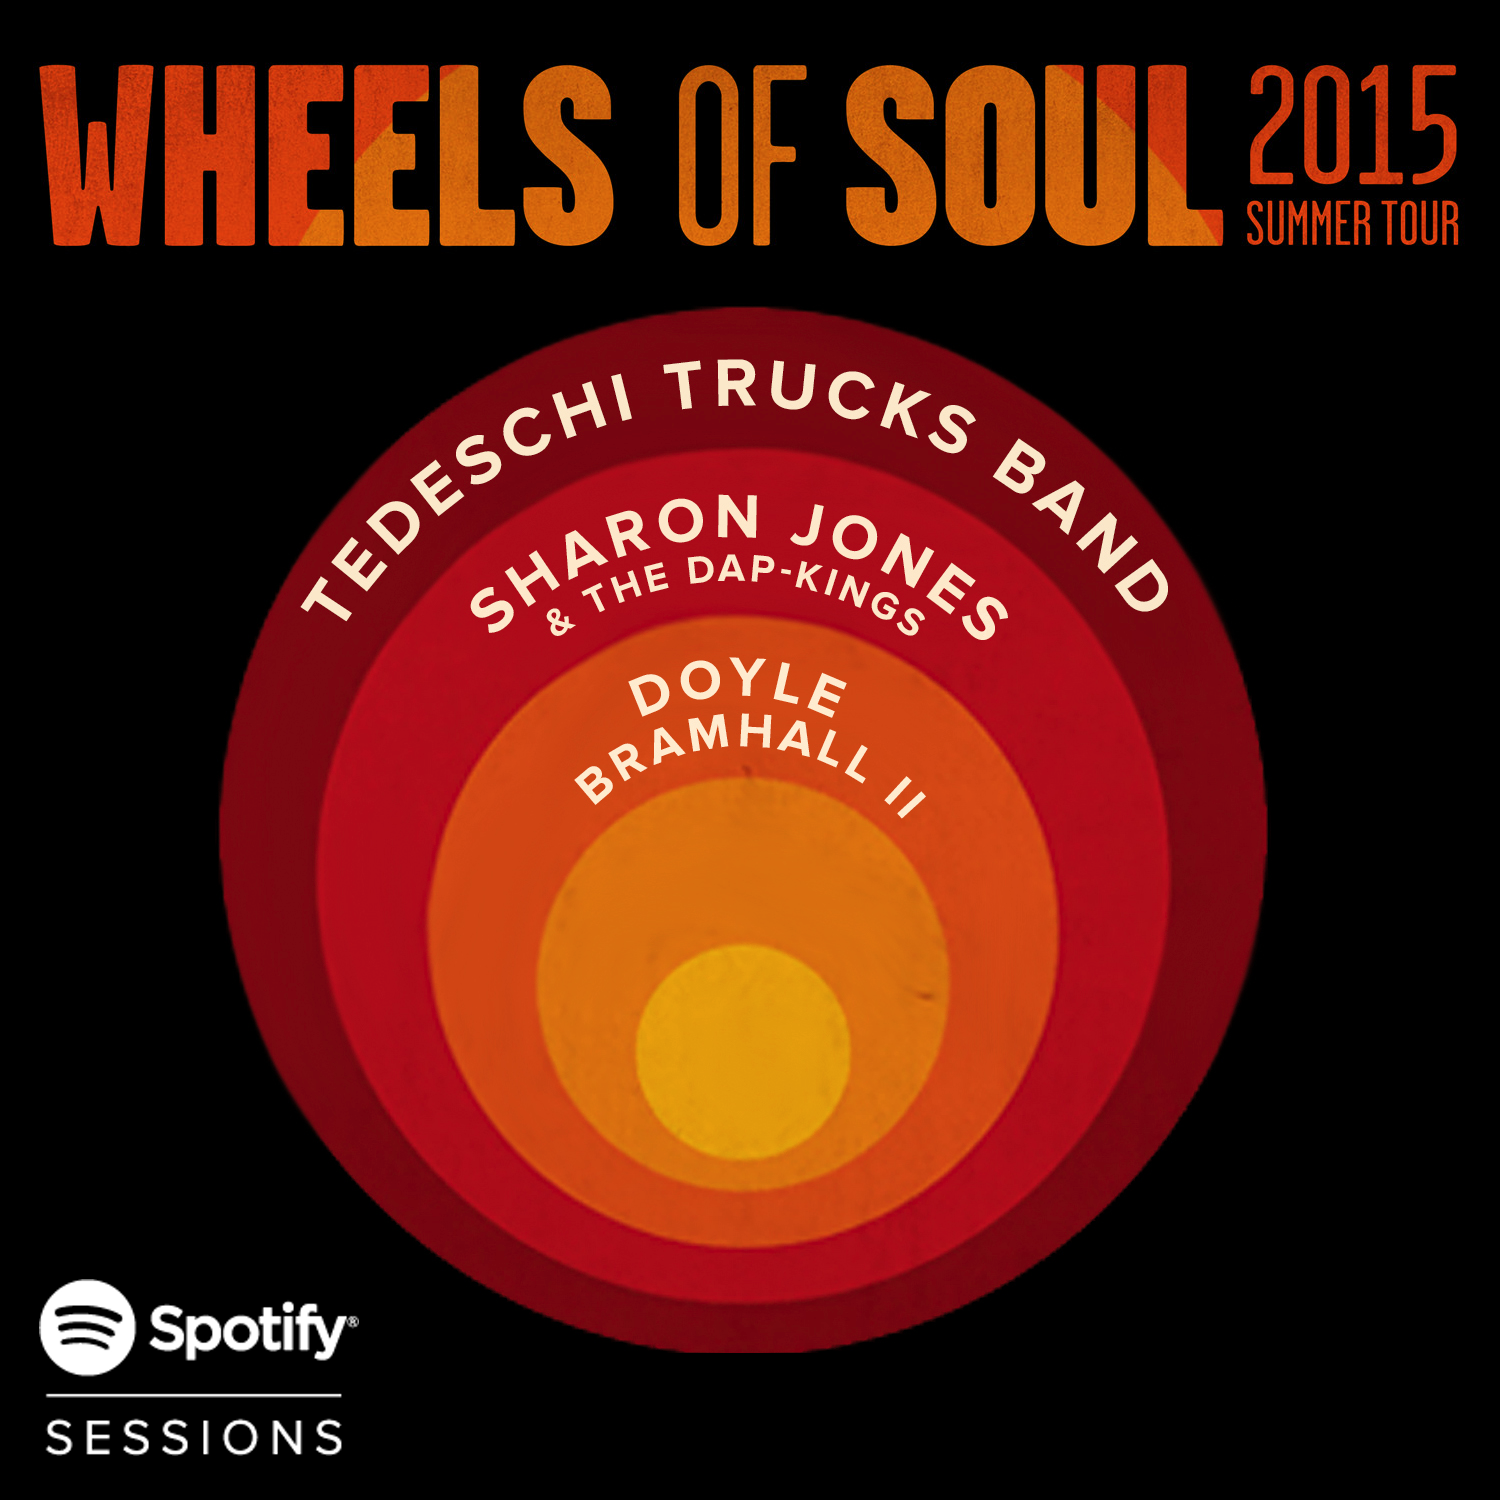 Hear the Wheels of Soul Spotify Session